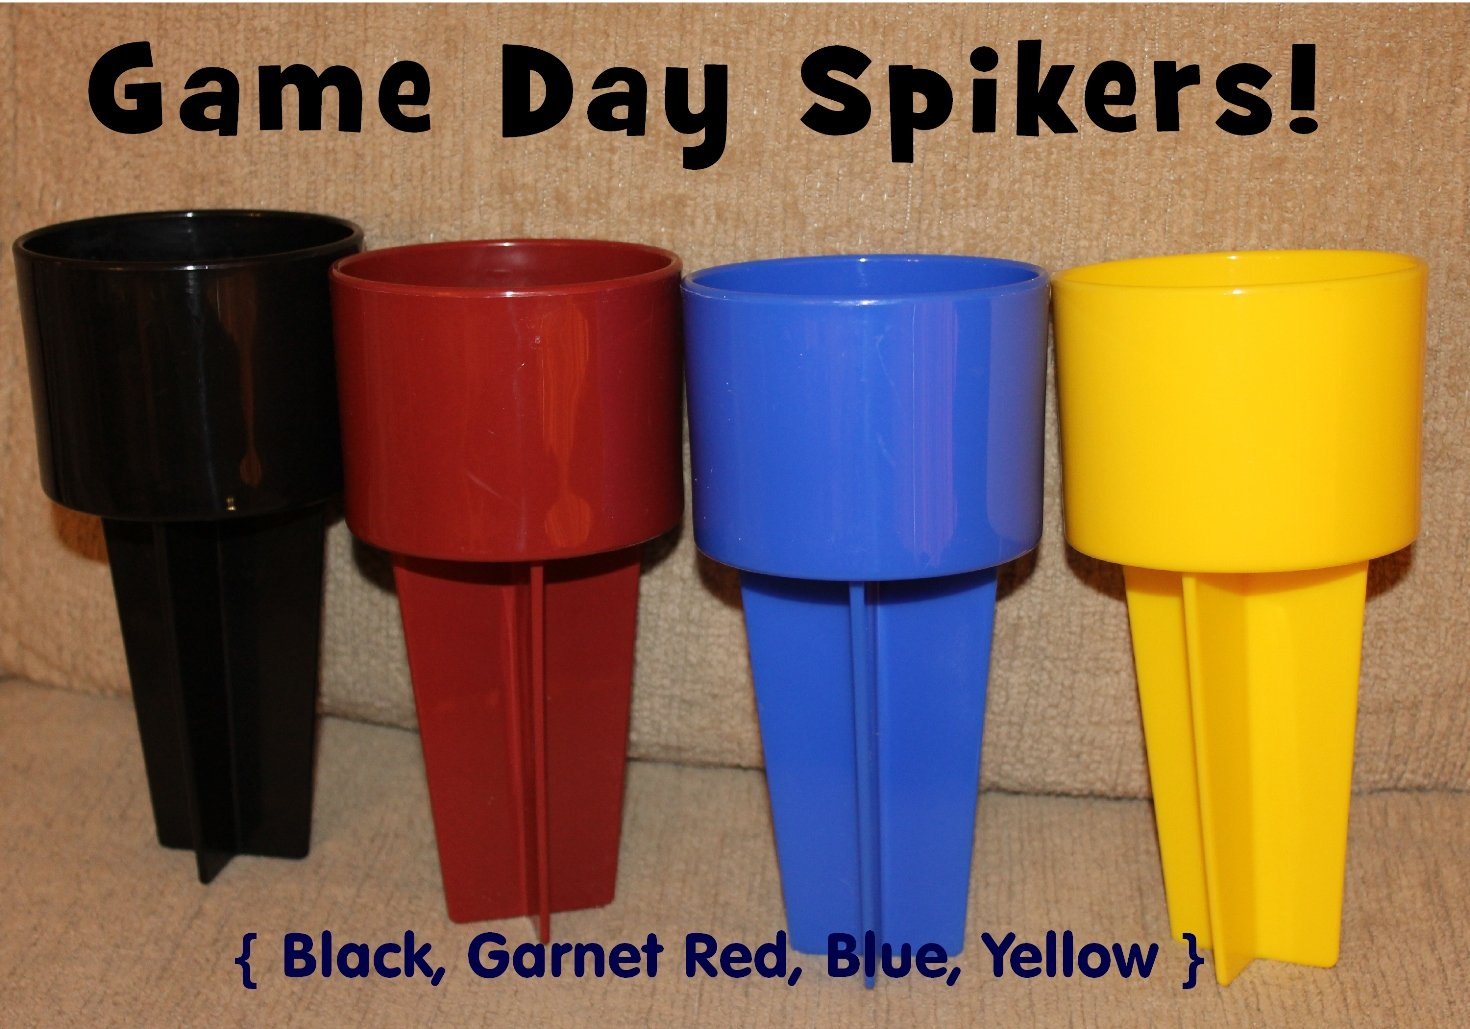 Spiker Game Day Limited Edition 48 Craft Pack for Monogramming by SPIKER (Image #2)